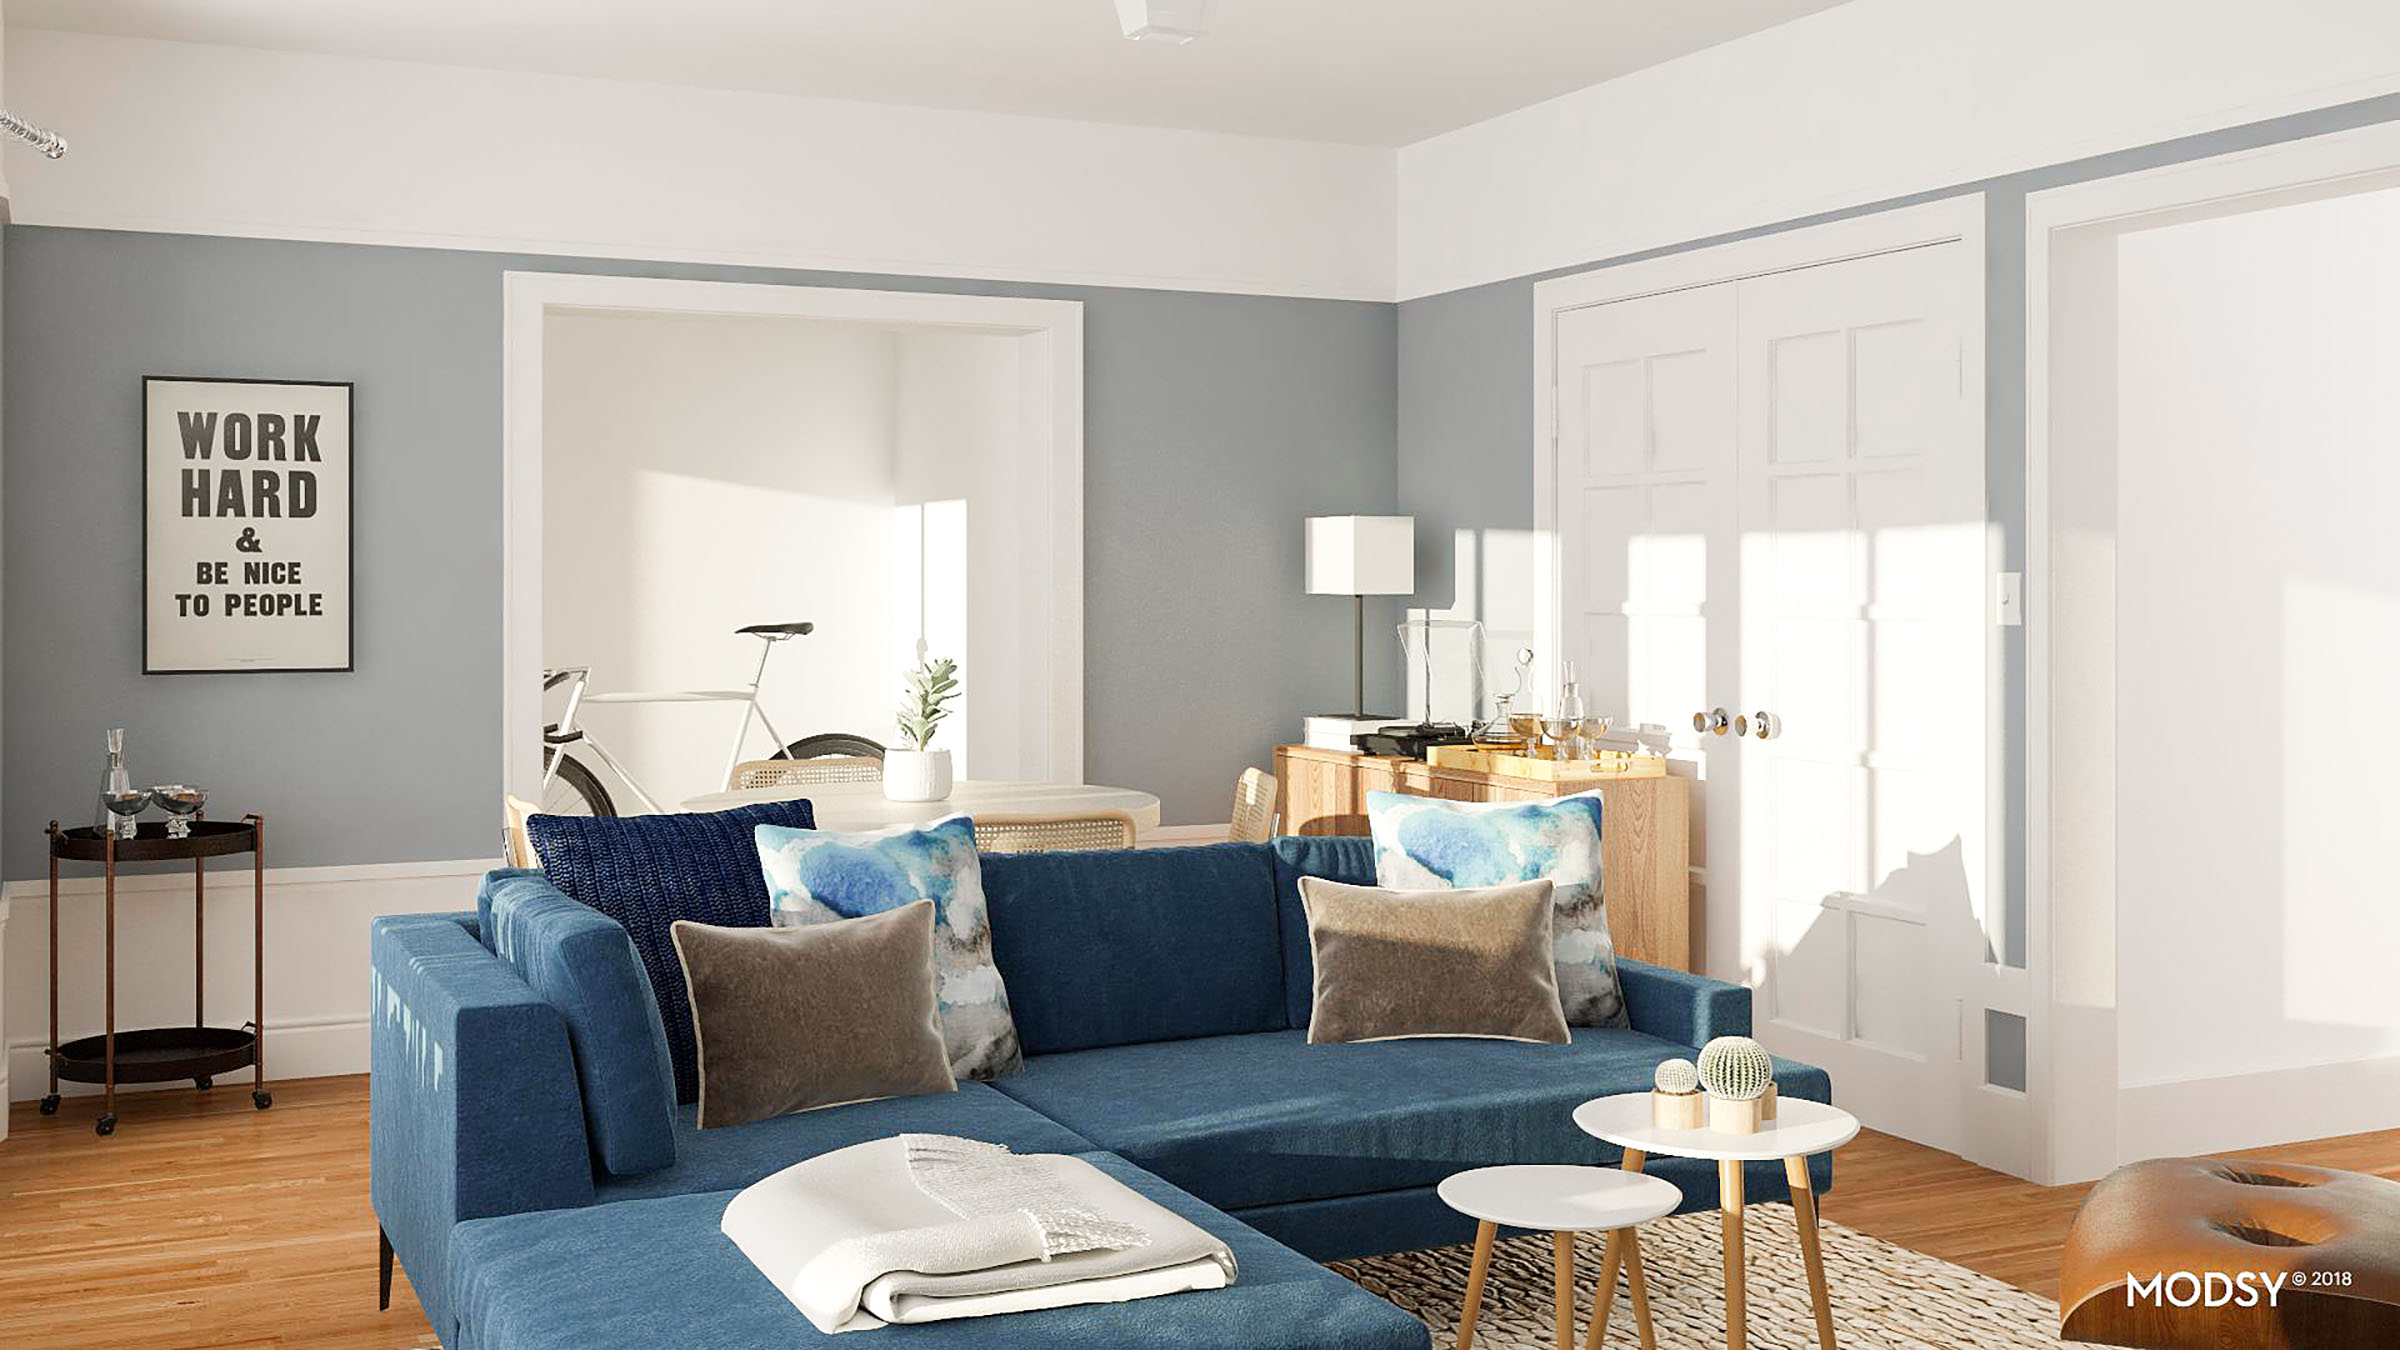 Solutions And Help For Small Space Living